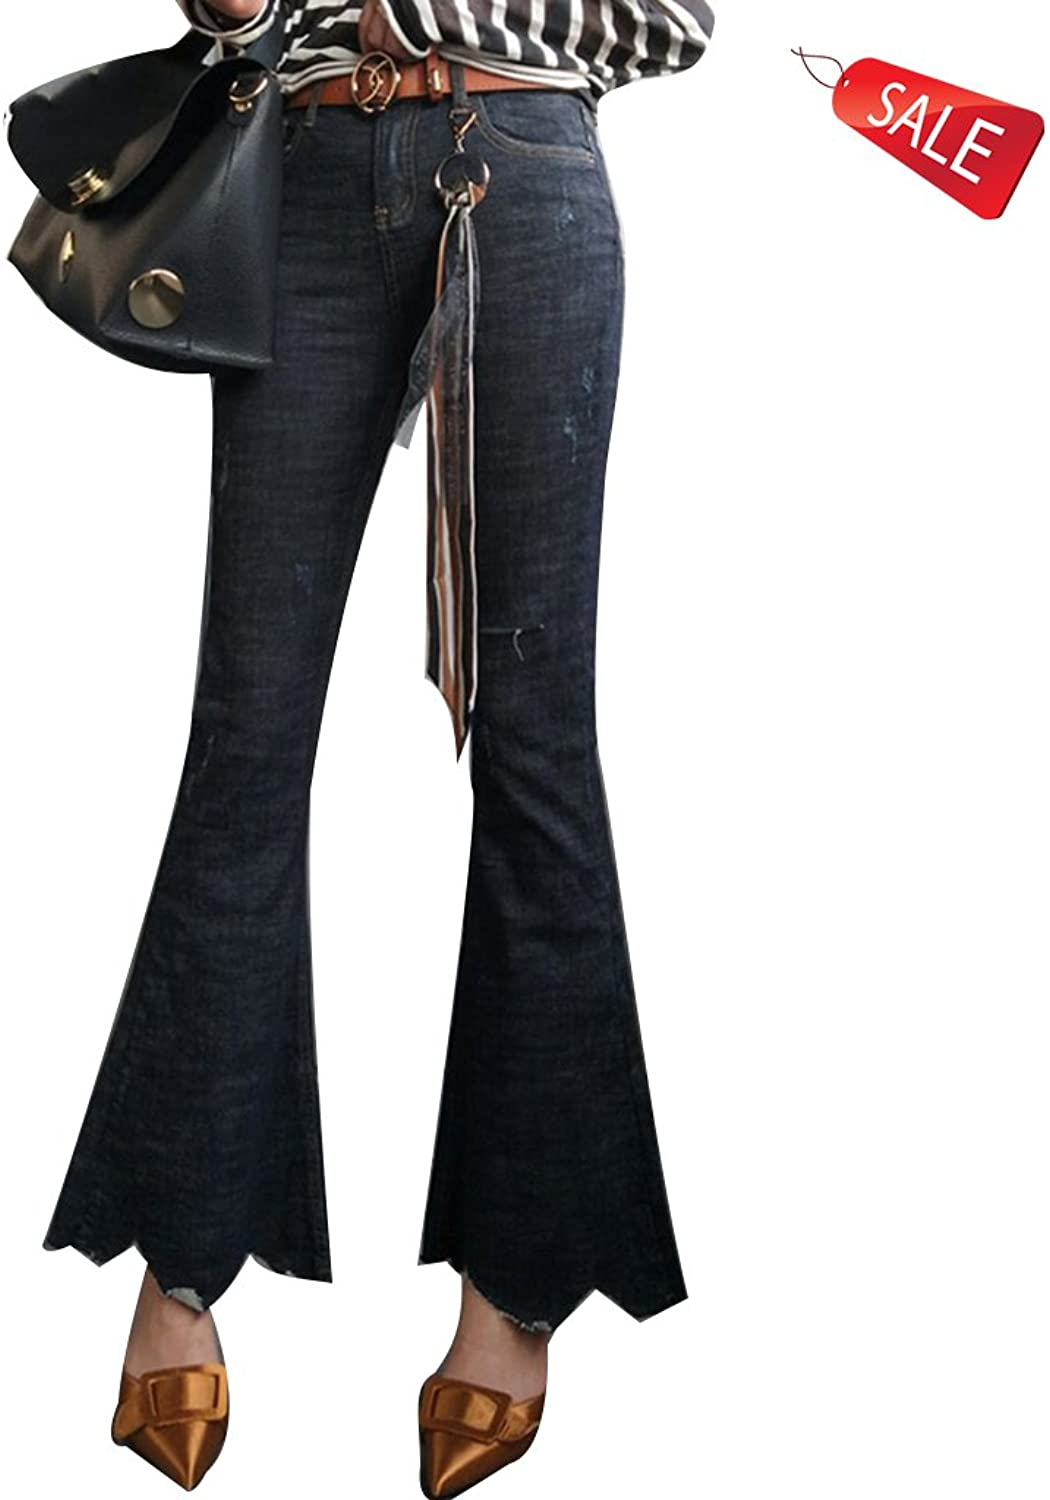 Europe The Jeans High Waist Cut Spring and Autumn Slim Elasticity Retro Boot Cut Pant (Size   27)